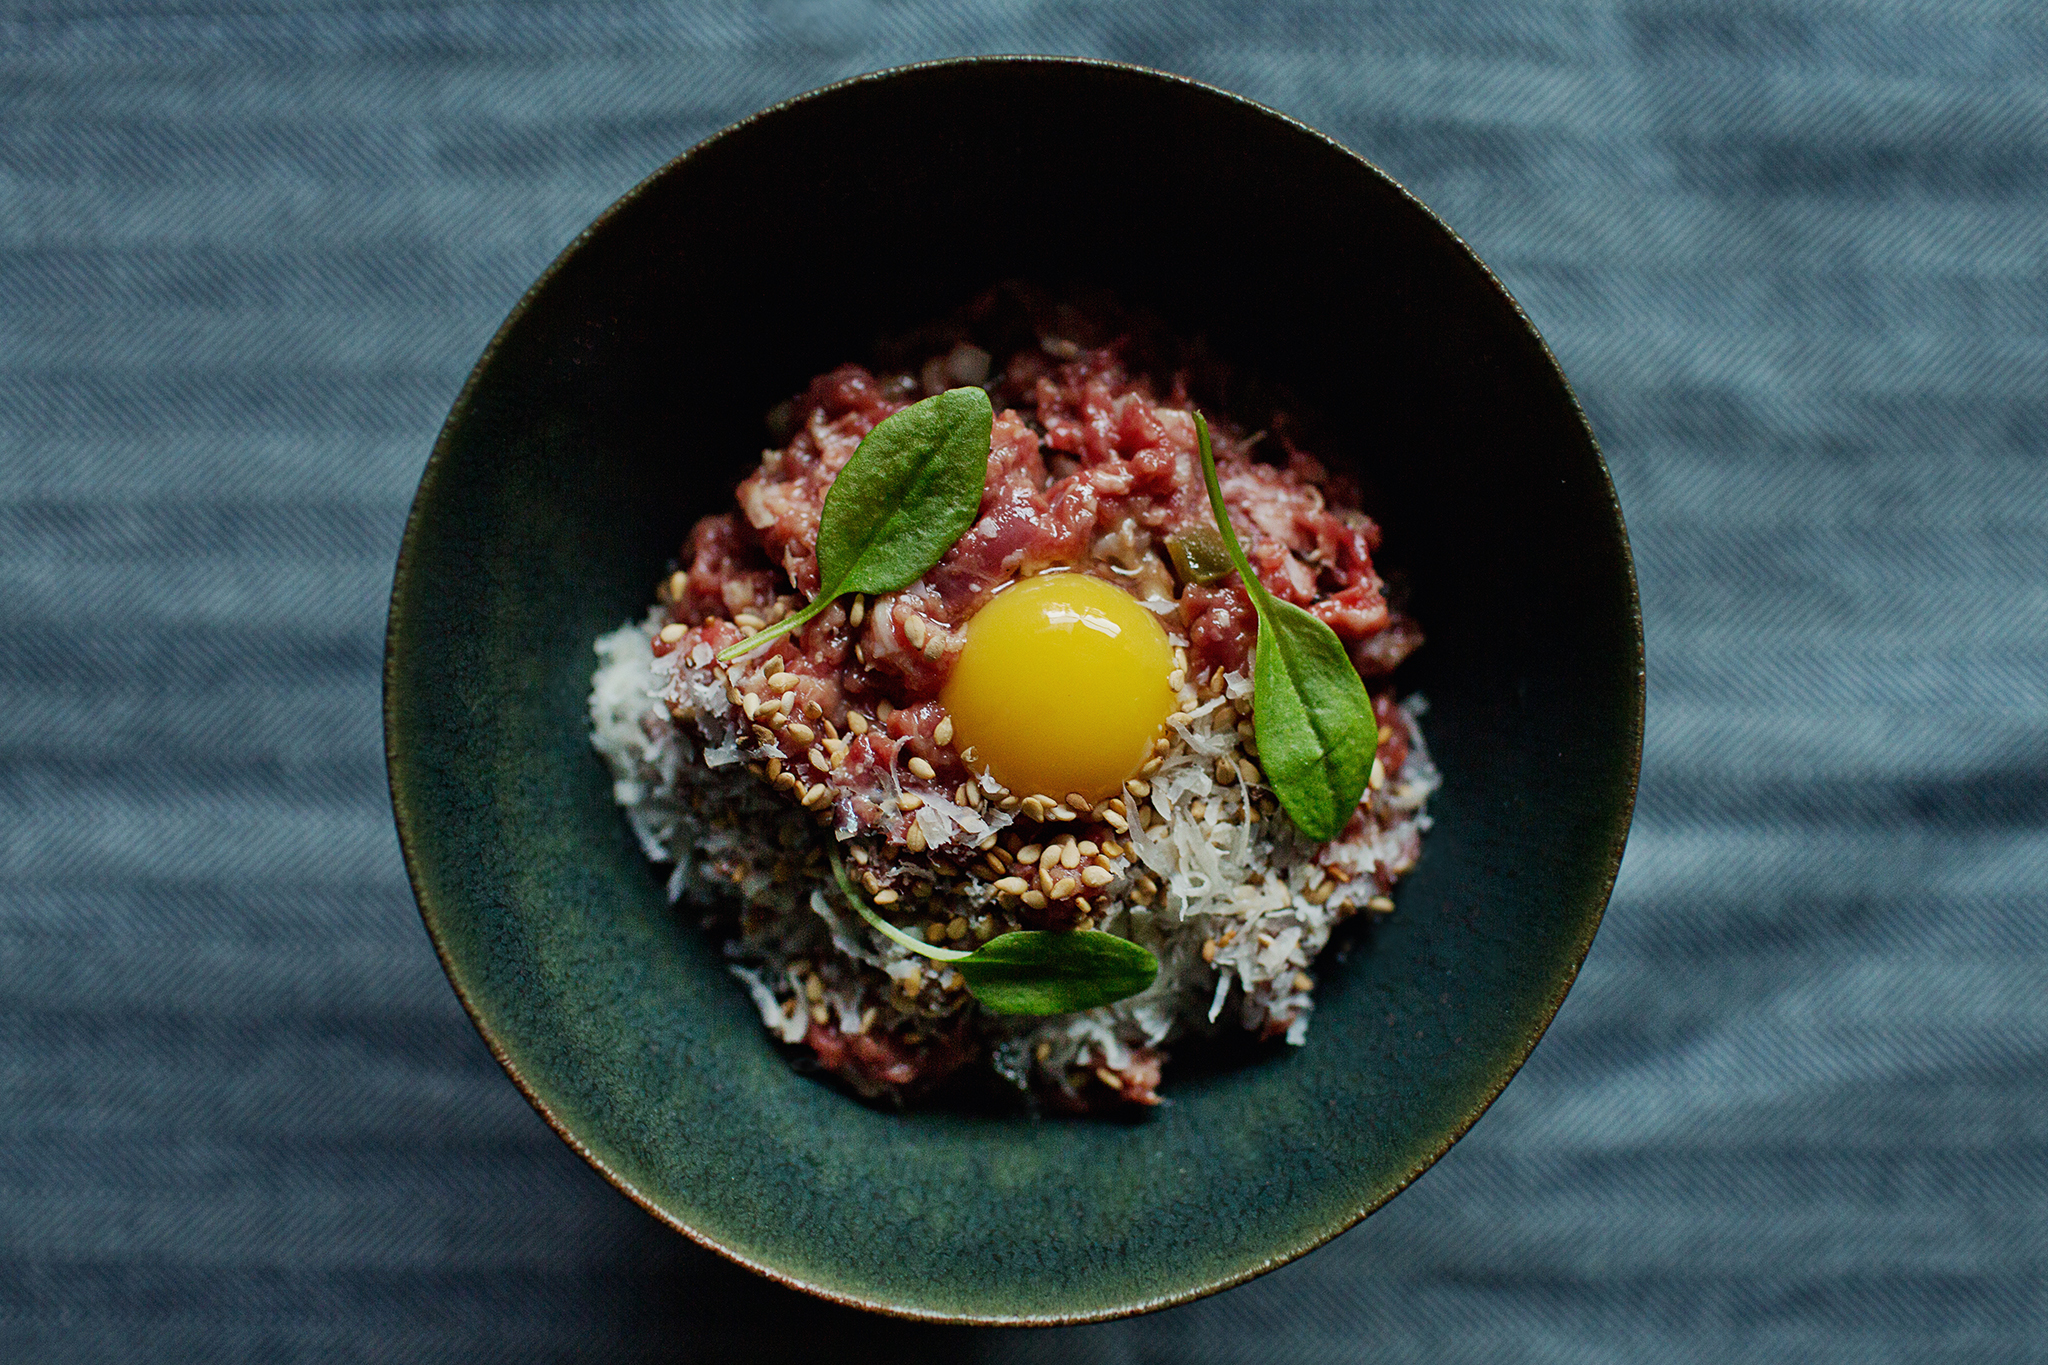 Beef tartare at Hinoki & the Bird